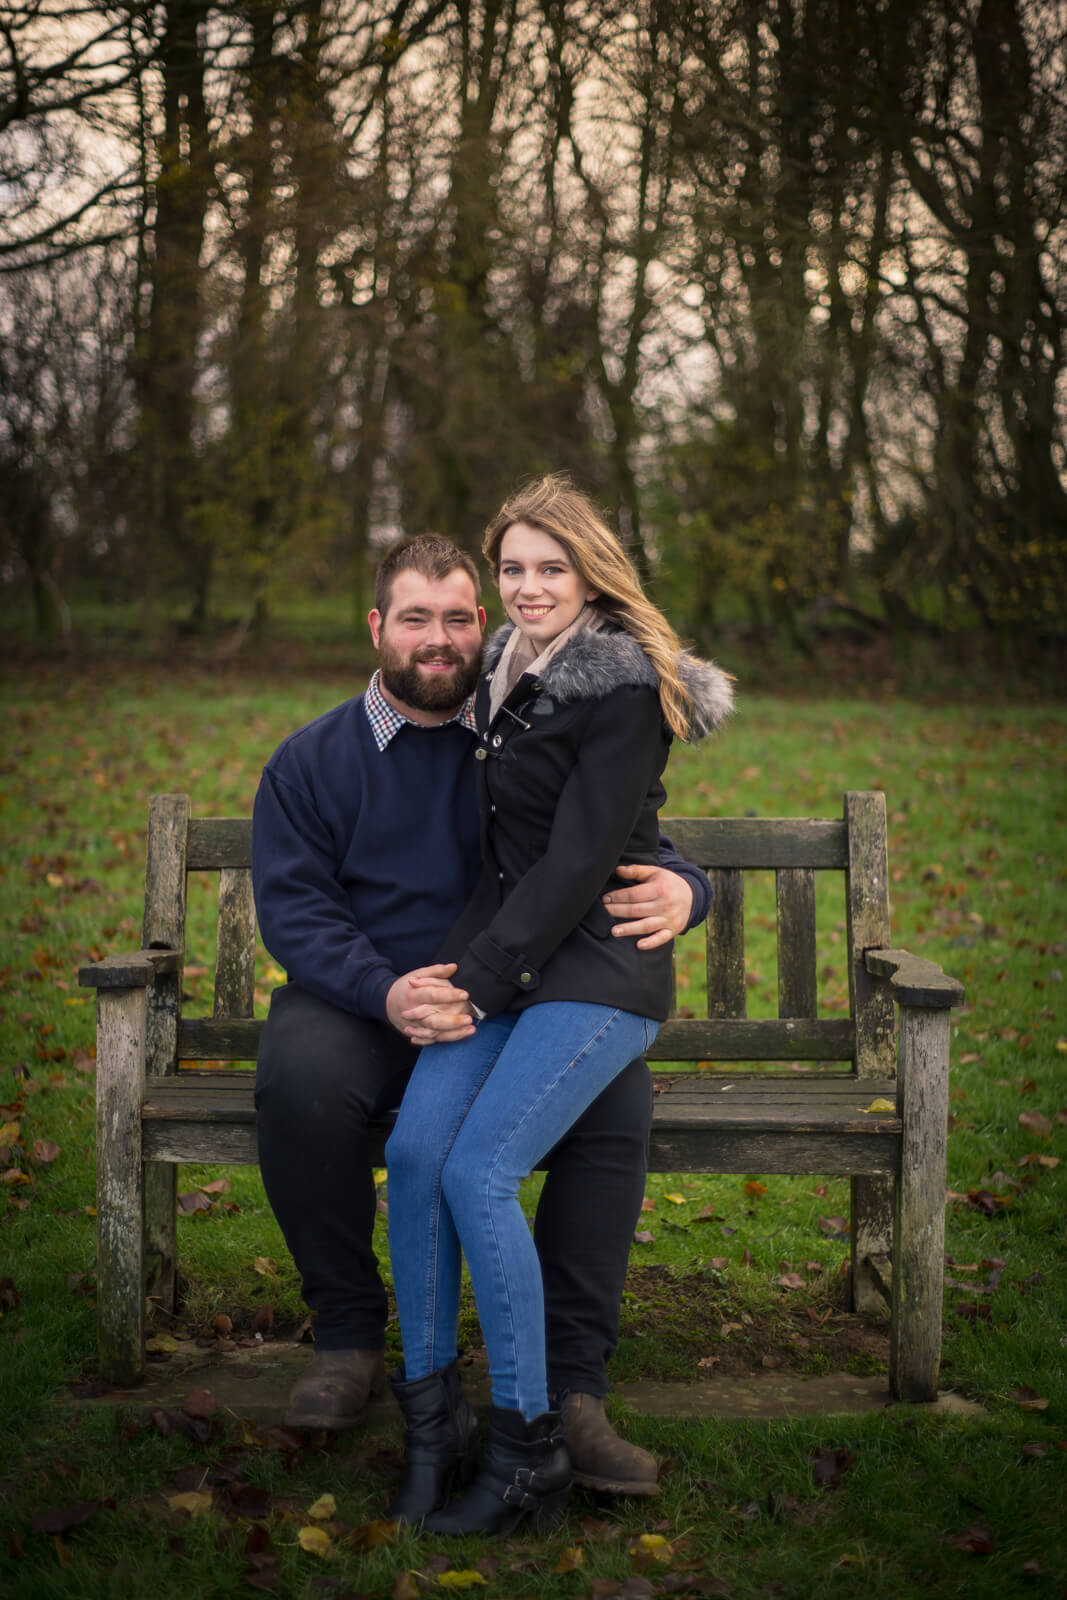 Man sits on a park bench with his fiance on his knee